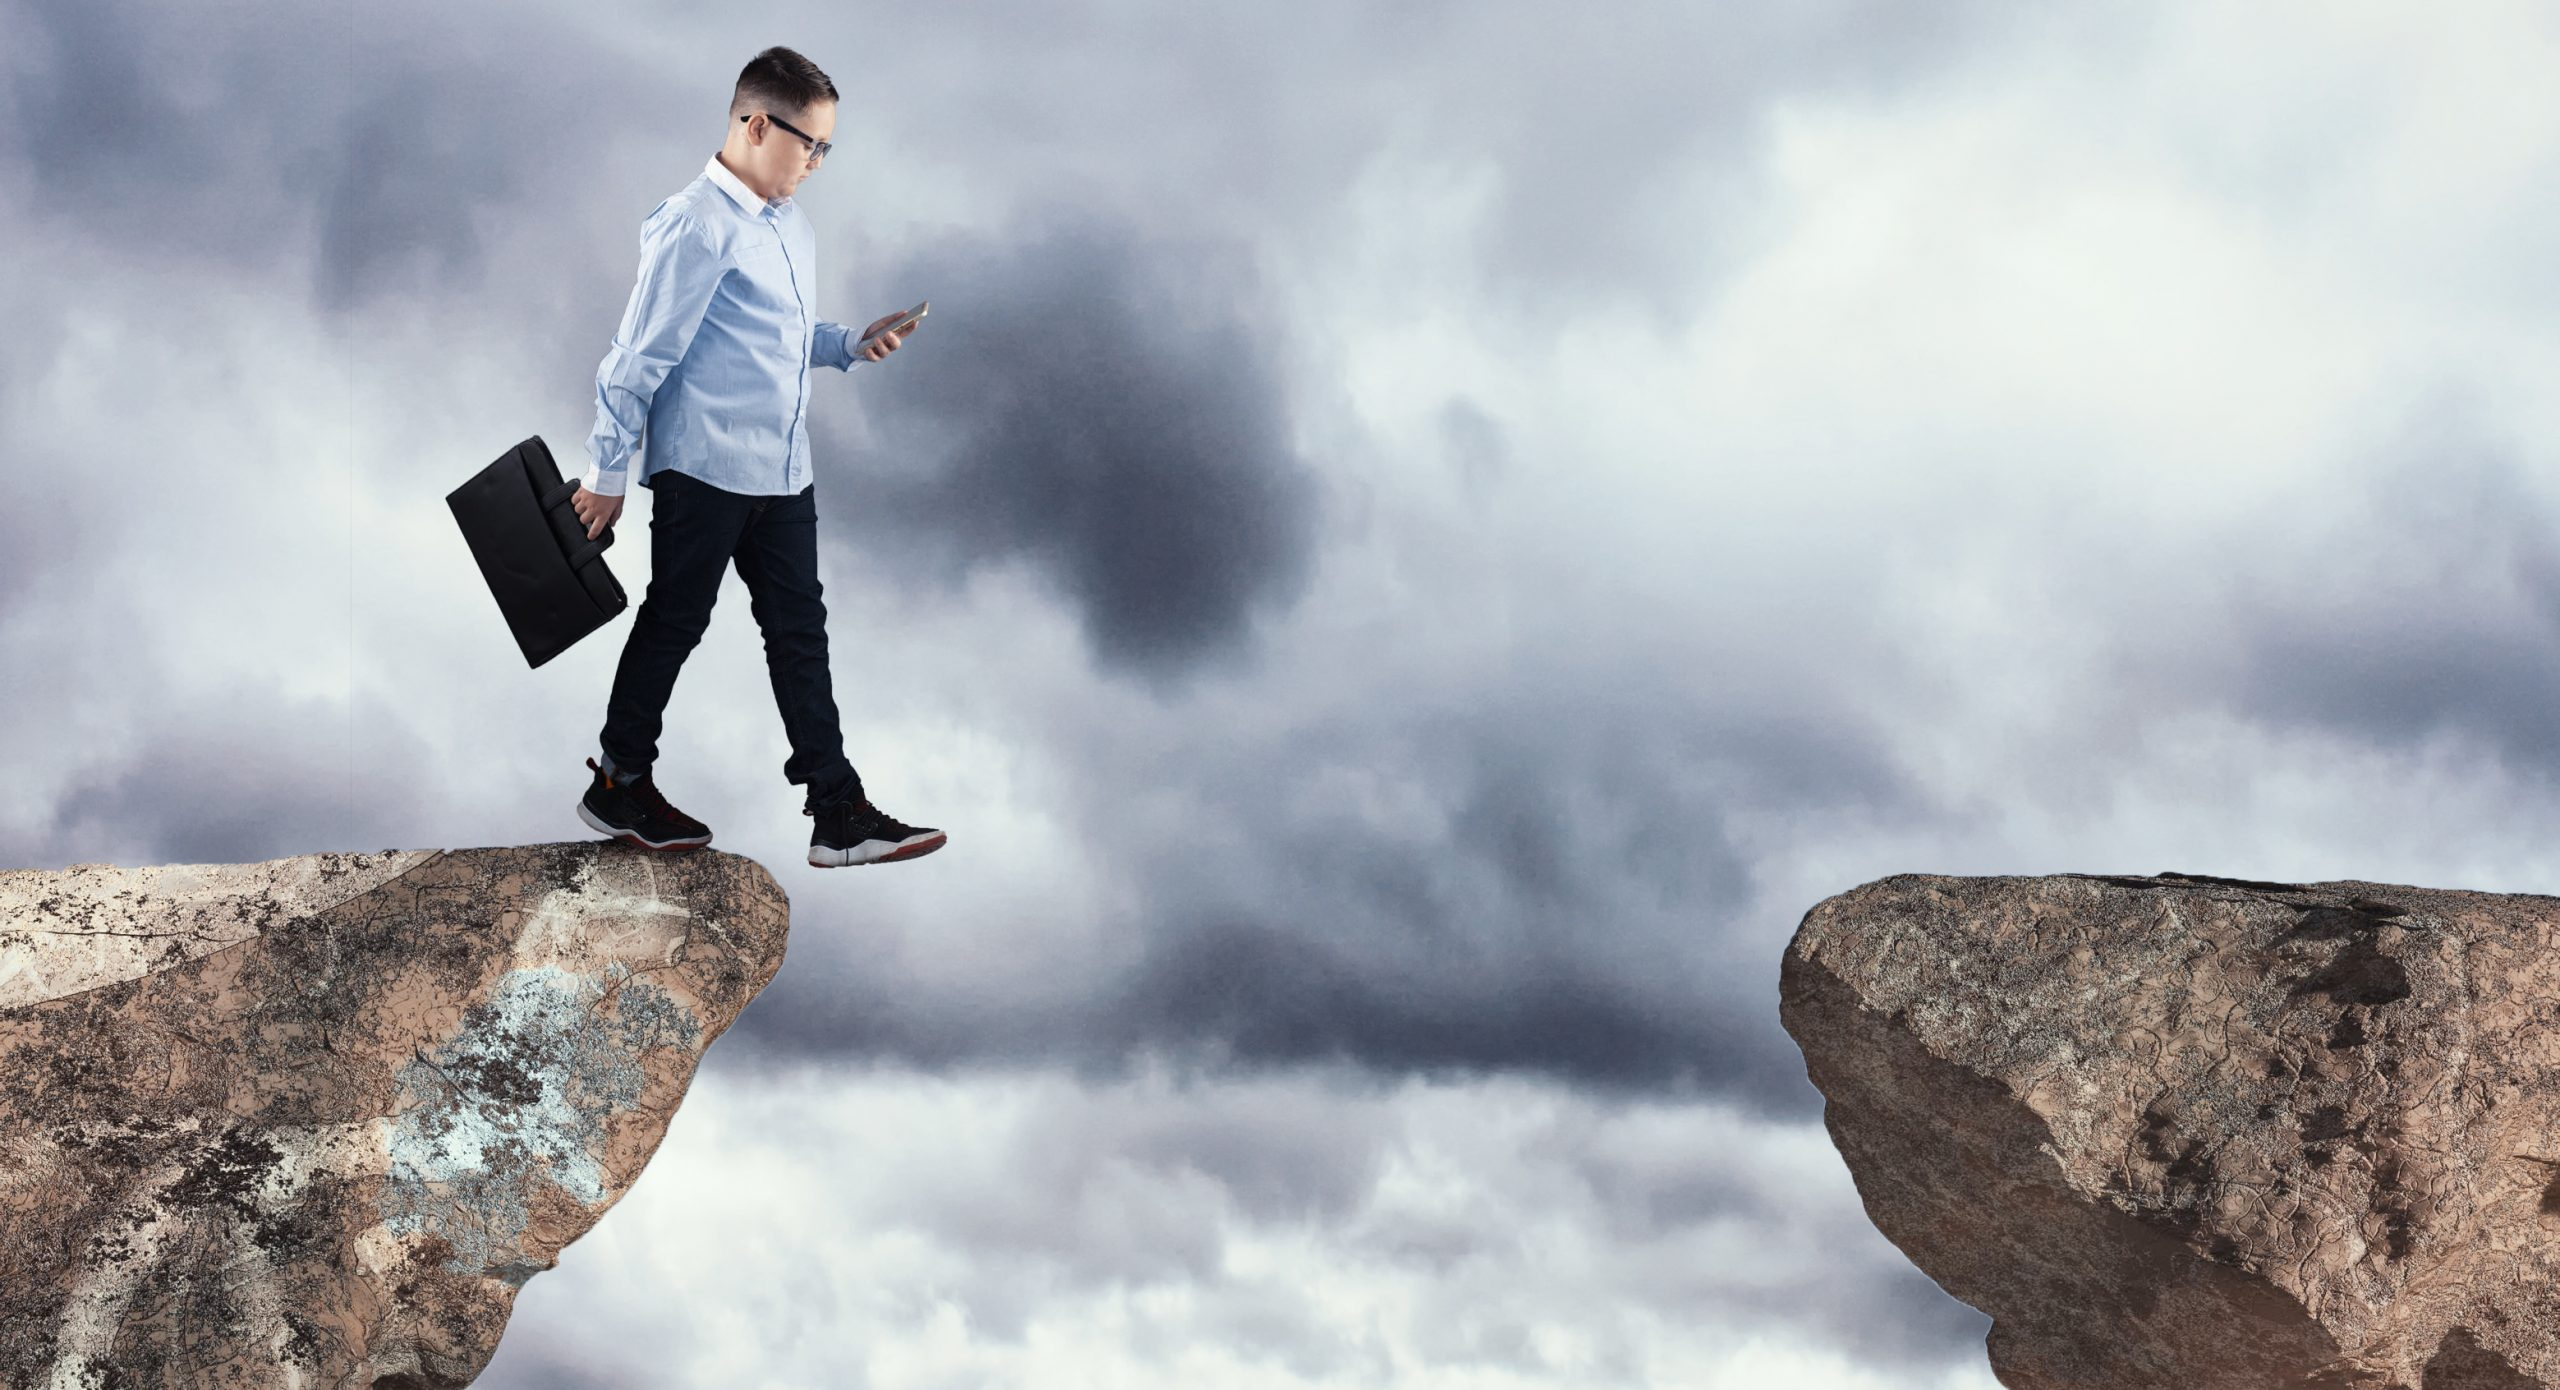 Walking into the abyss while using smartphone.